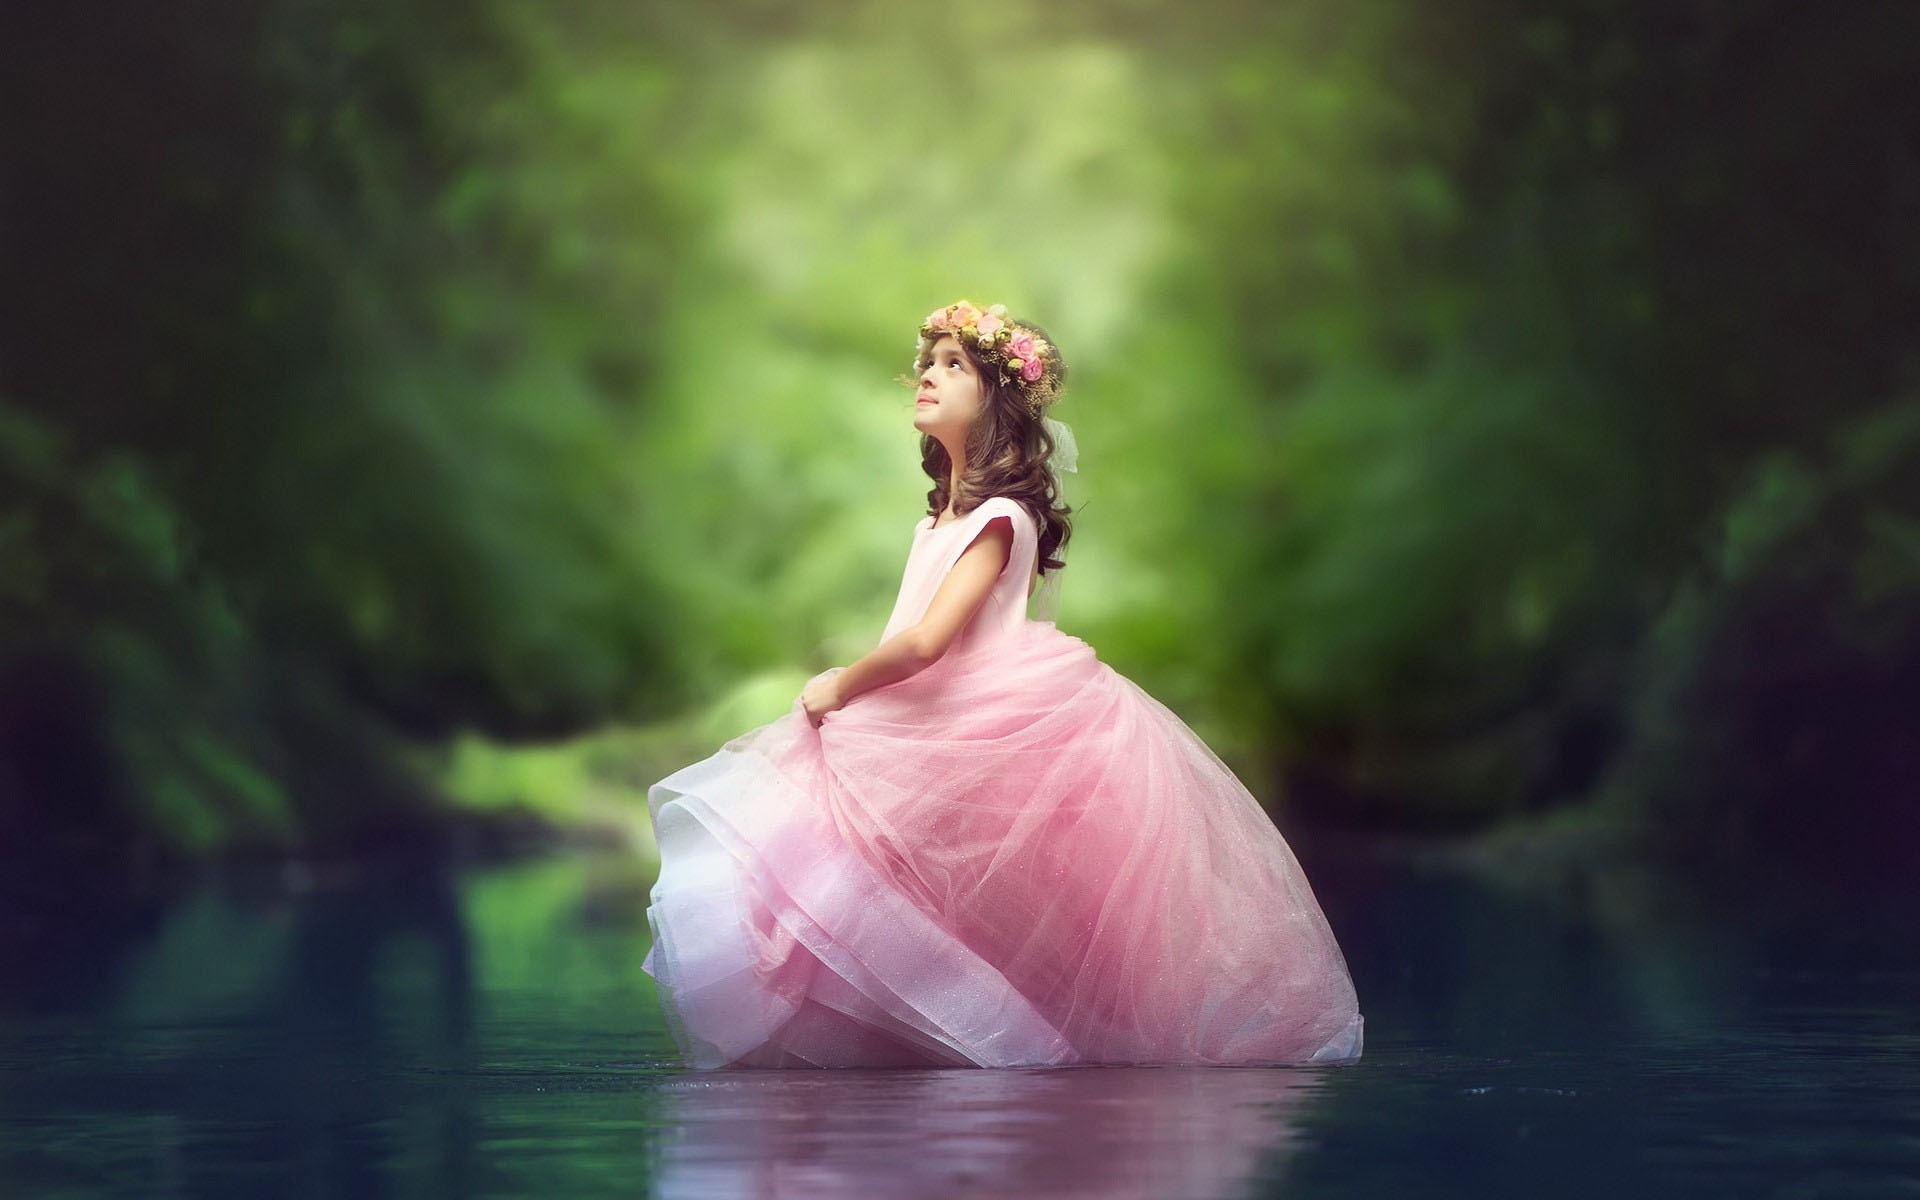 little princess girl in river wallpapers - 1920x1200 - 259725